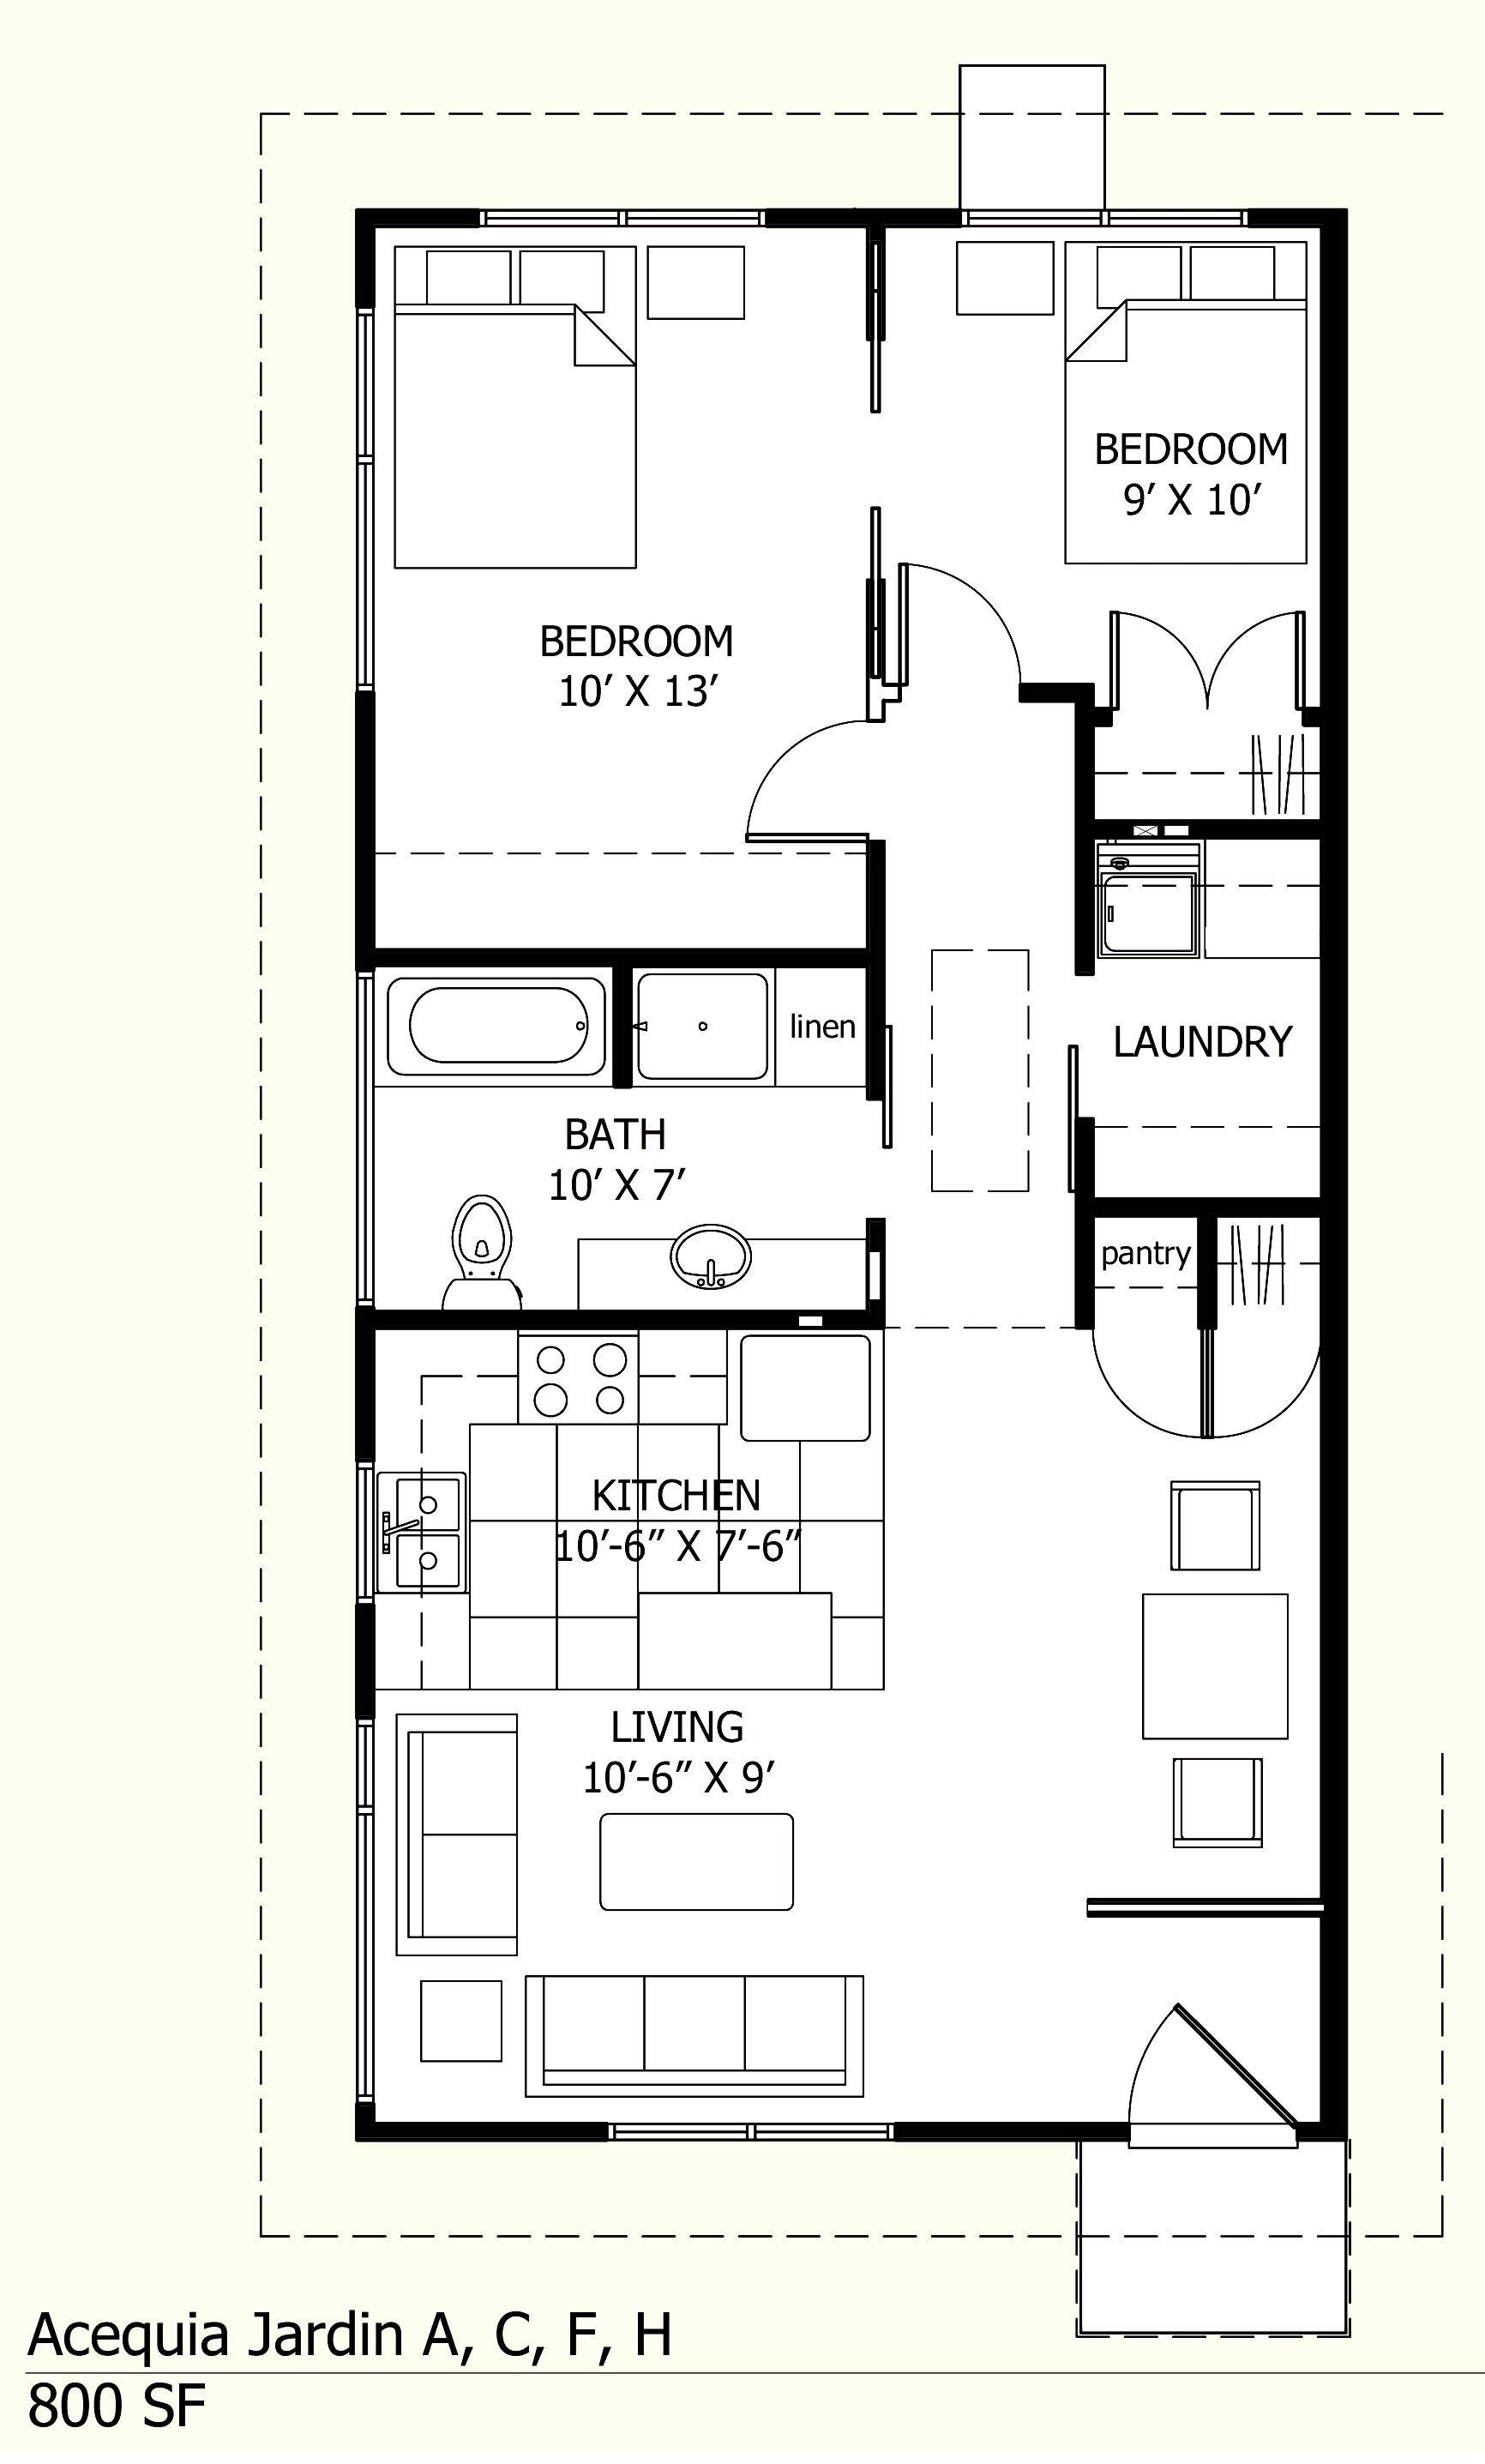 Small House Plans Under 600 Sq Ft Stephniepalma 600 Sf House Plans